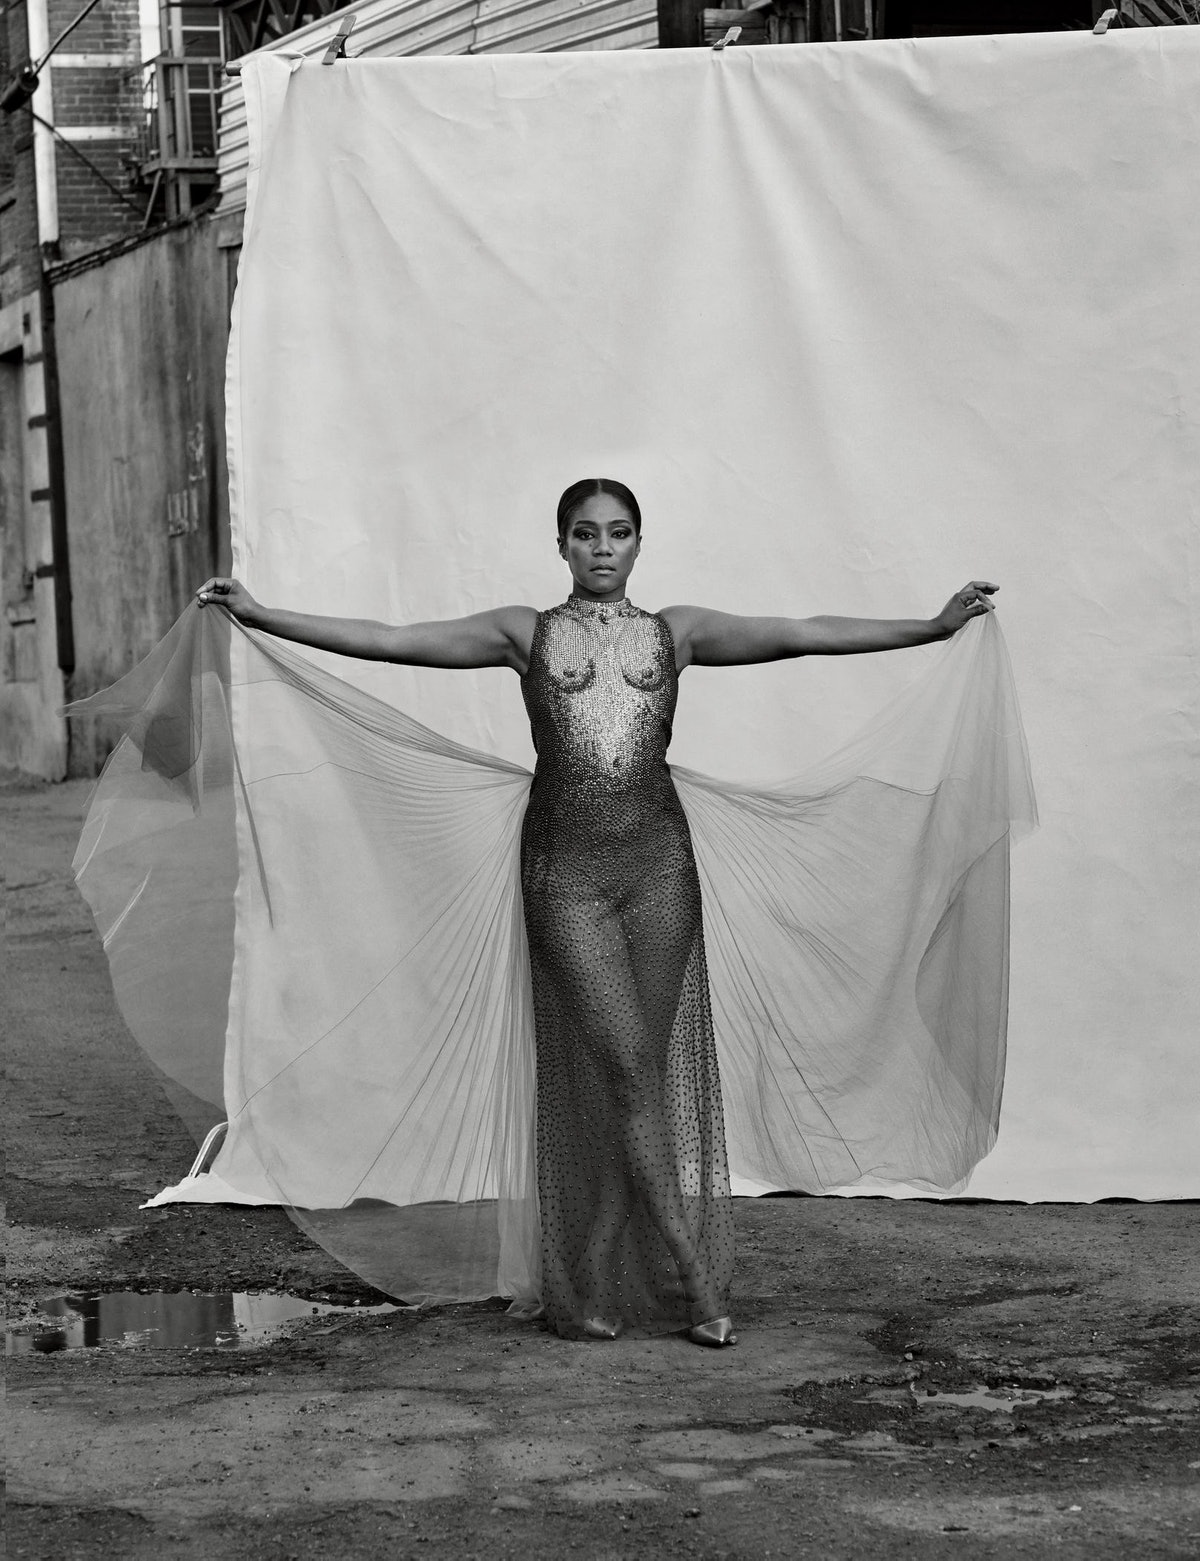 Tiffany Haddish with arms outstretched